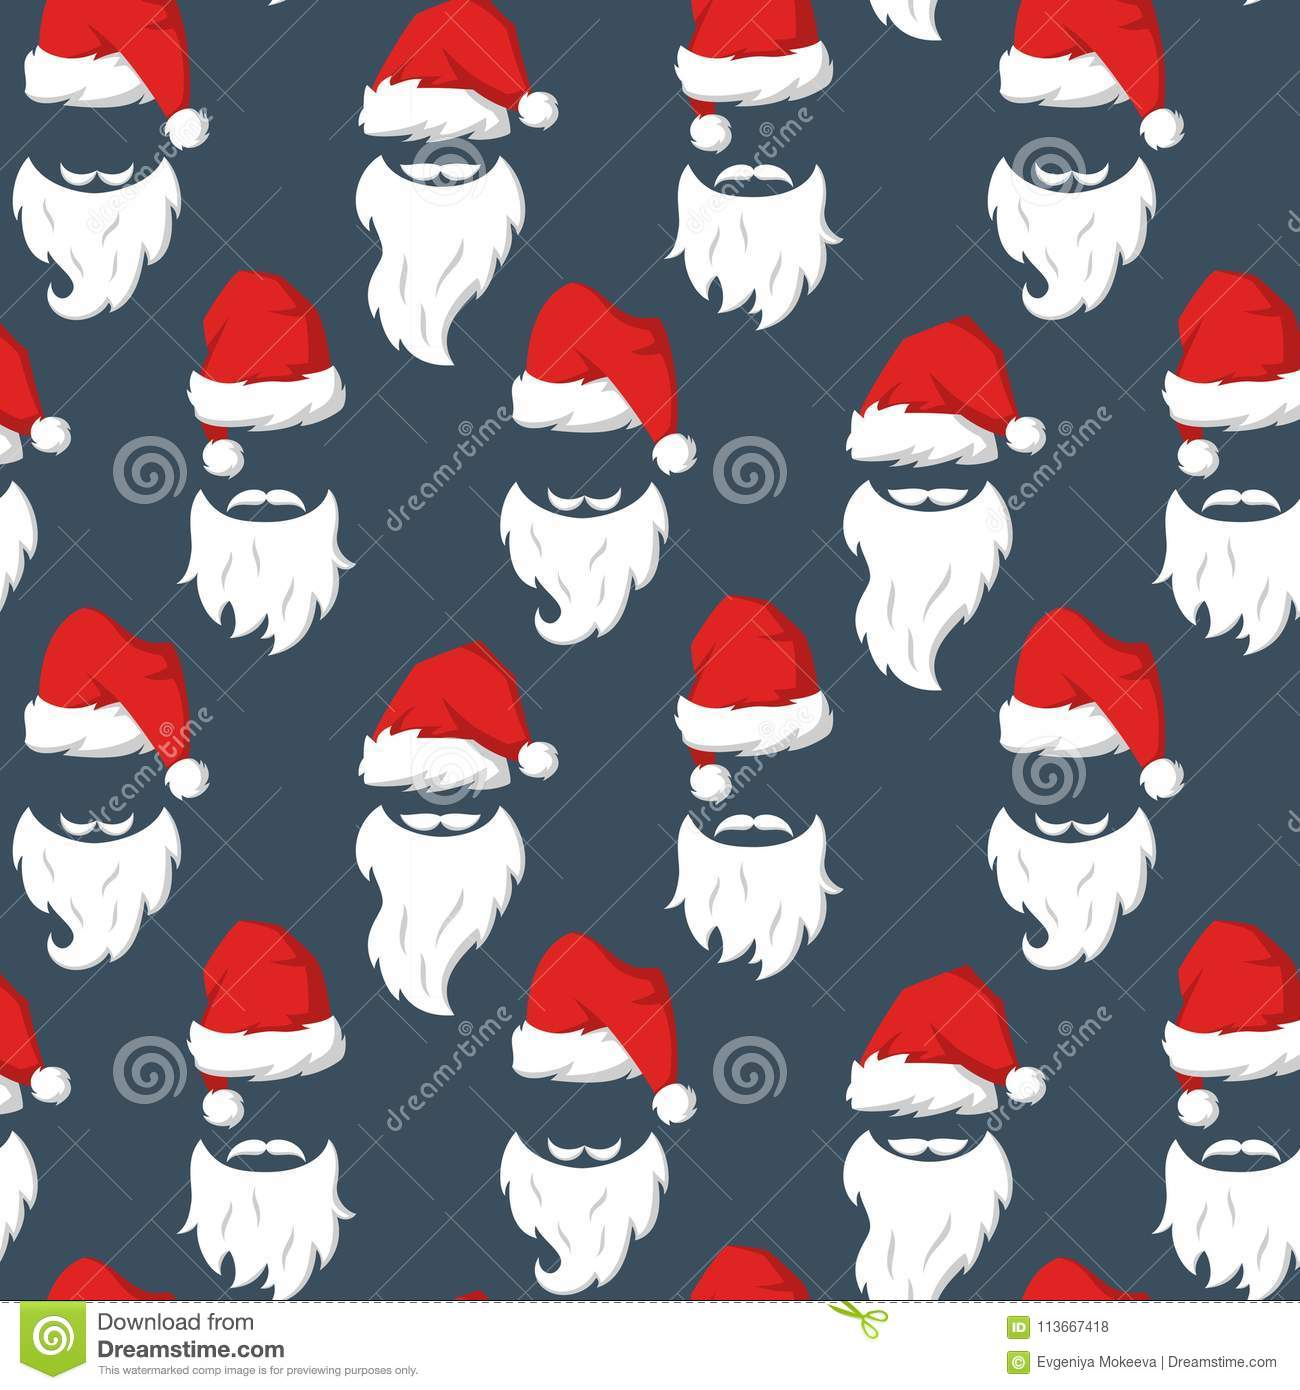 297ee6e3ec855 Royalty-Free Vector. Seamless pattern with Red hats and beard of Santa Claus .